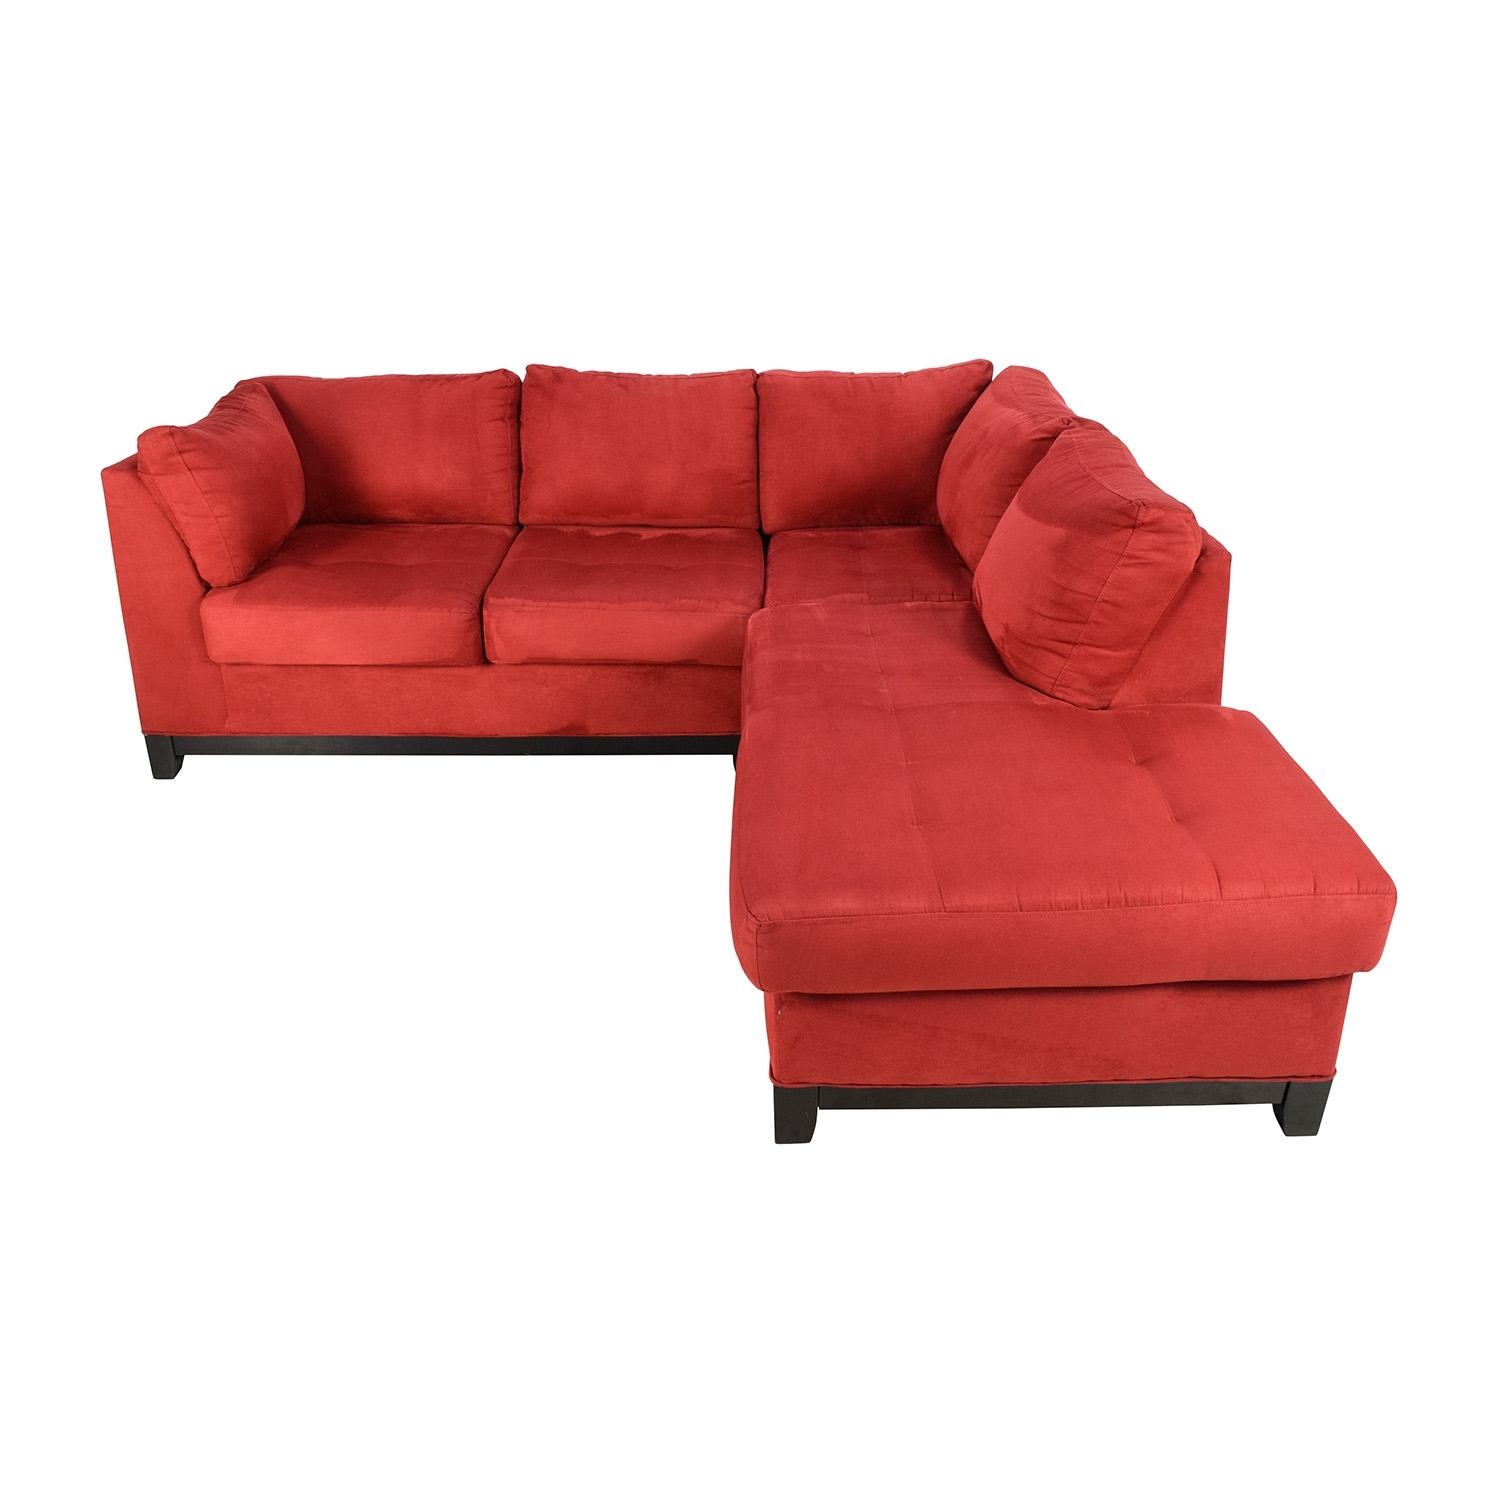 67% Off - Raymour And Flanigan Raymour & Flanigan Zella Red in Sectional Sofas At Raymour And Flanigan